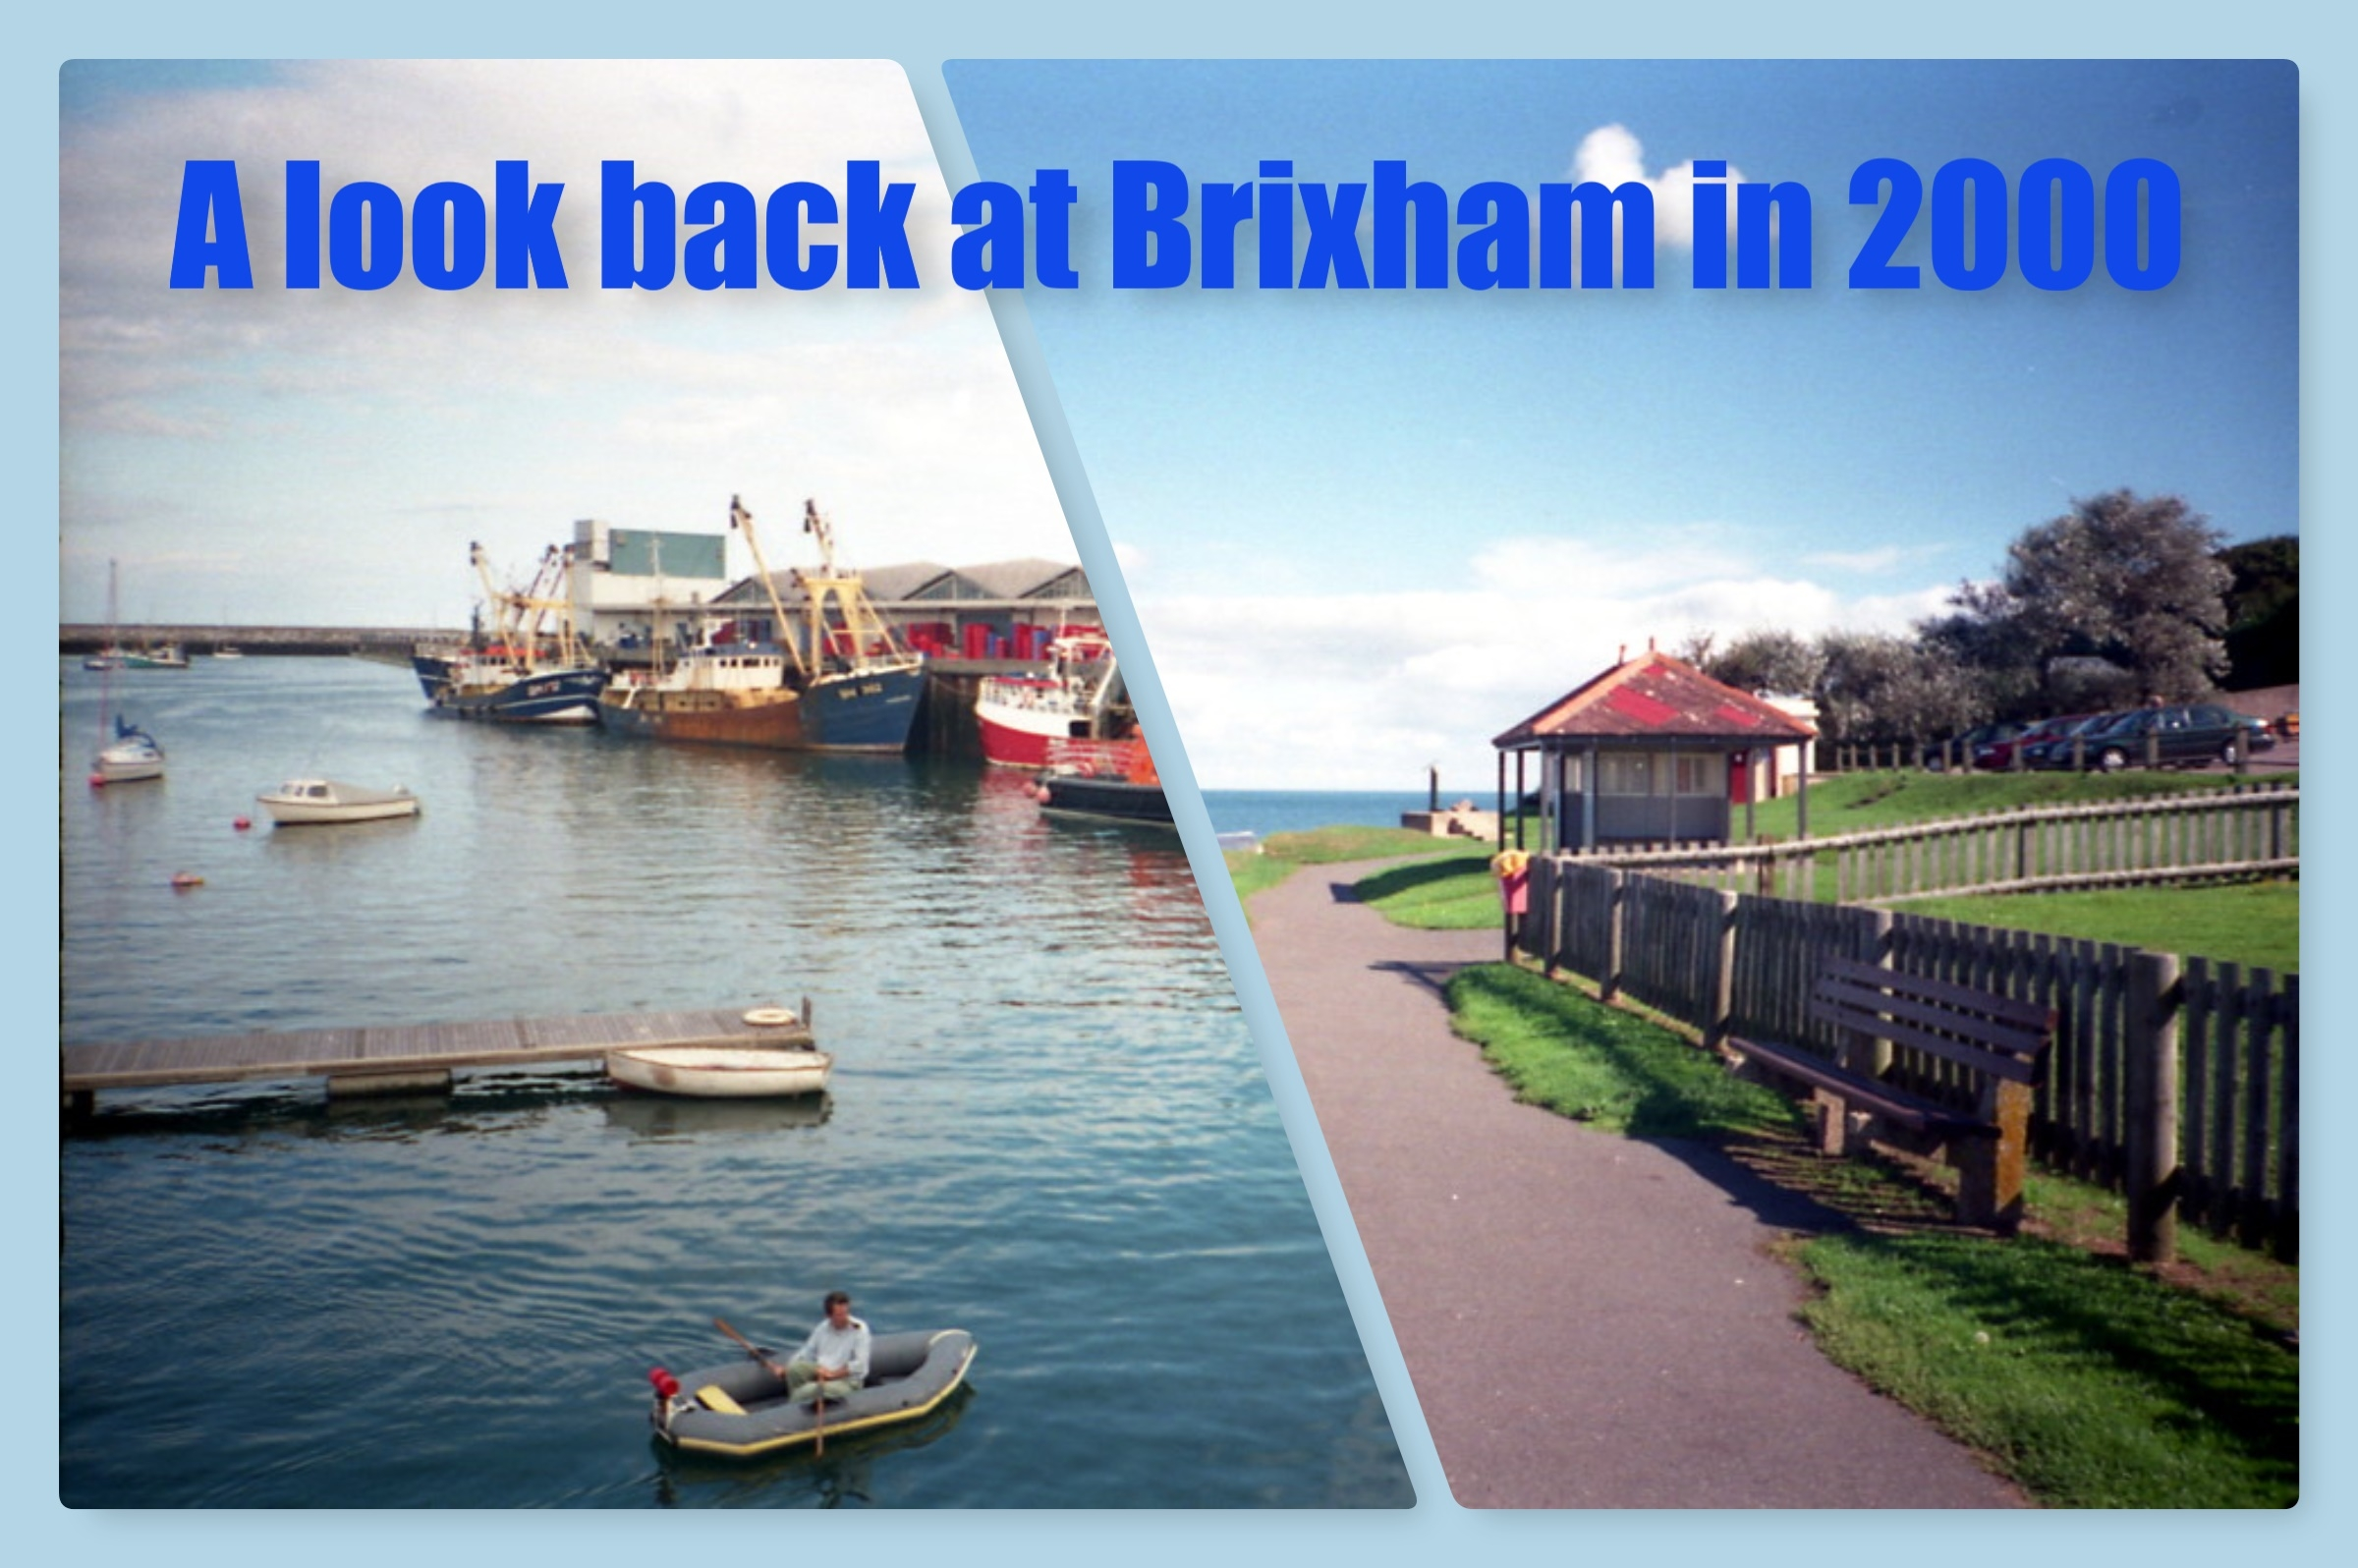 A look back at Brixham: photos from the year 2000